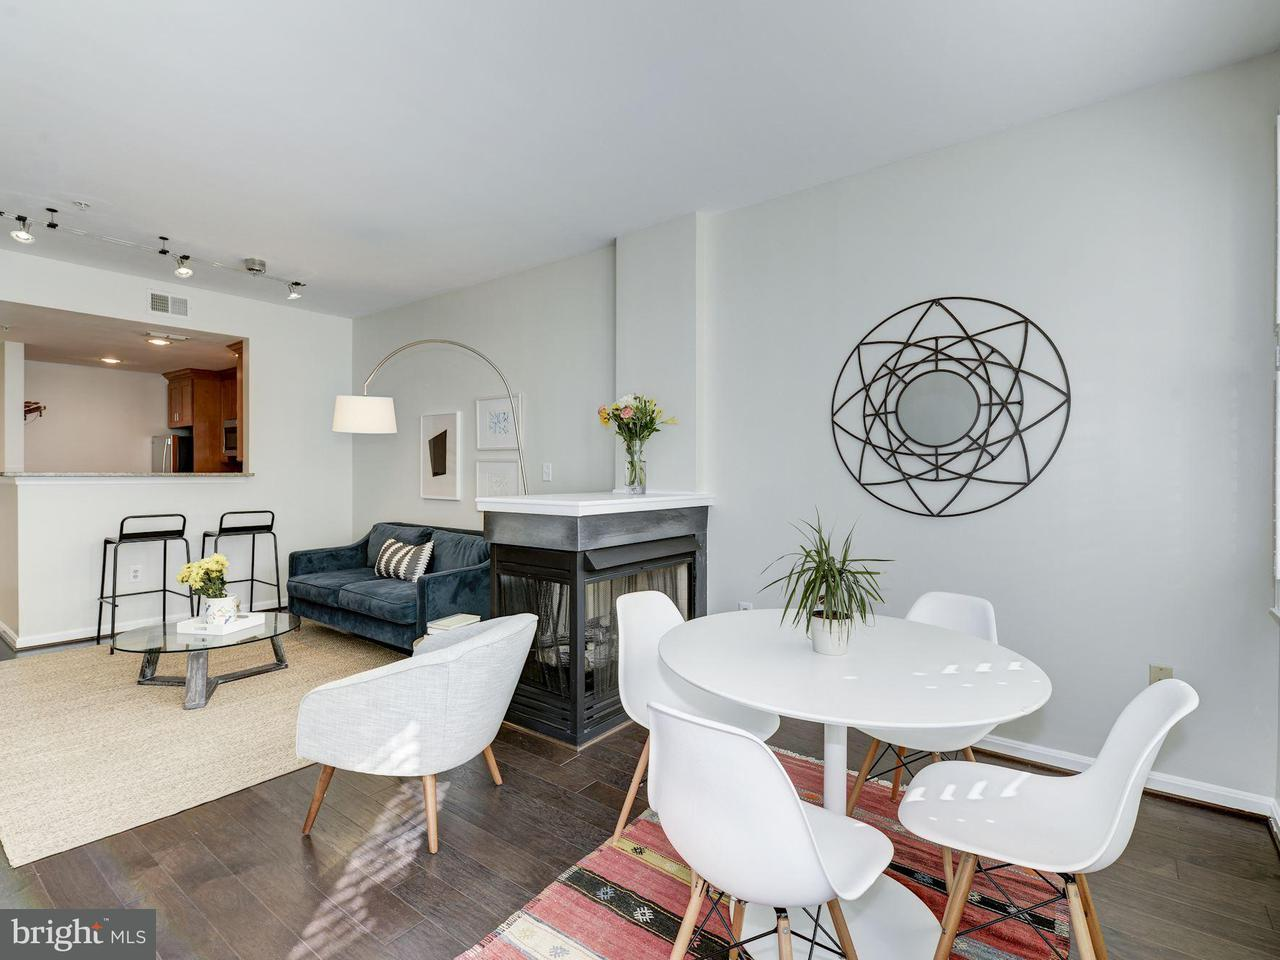 Single Family Home for Sale at 2004 11TH ST NW #231 2004 11TH ST NW #231 Washington, District Of Columbia 20001 United States